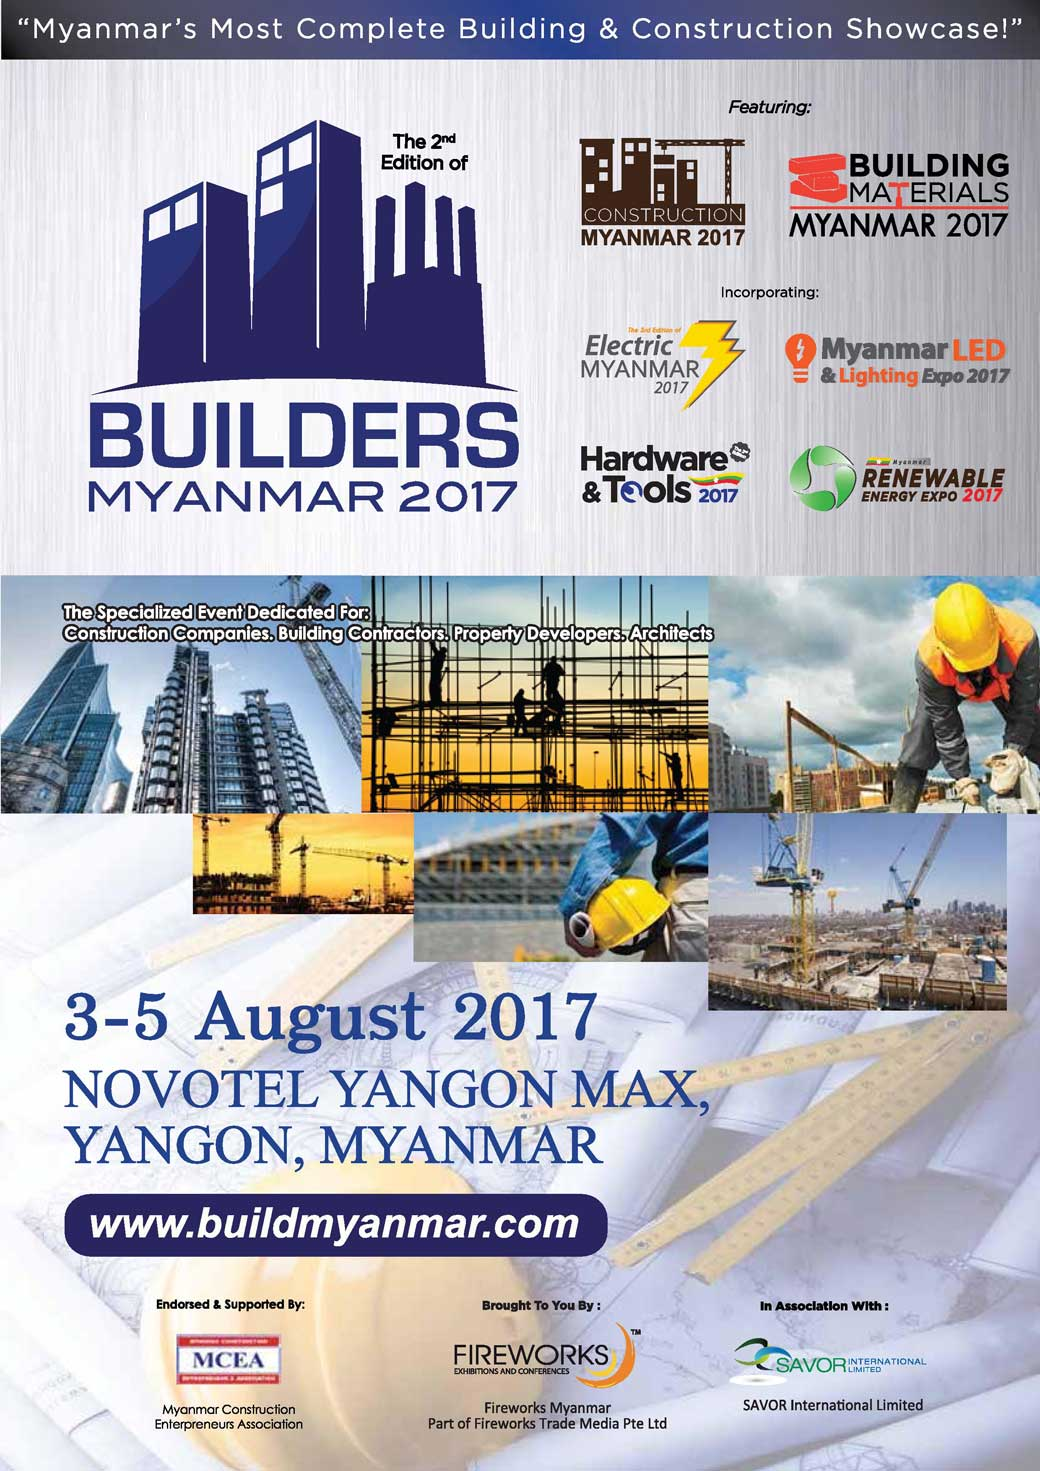 Builders Myanmar Expo 2017 - Exhibition in Myanmar